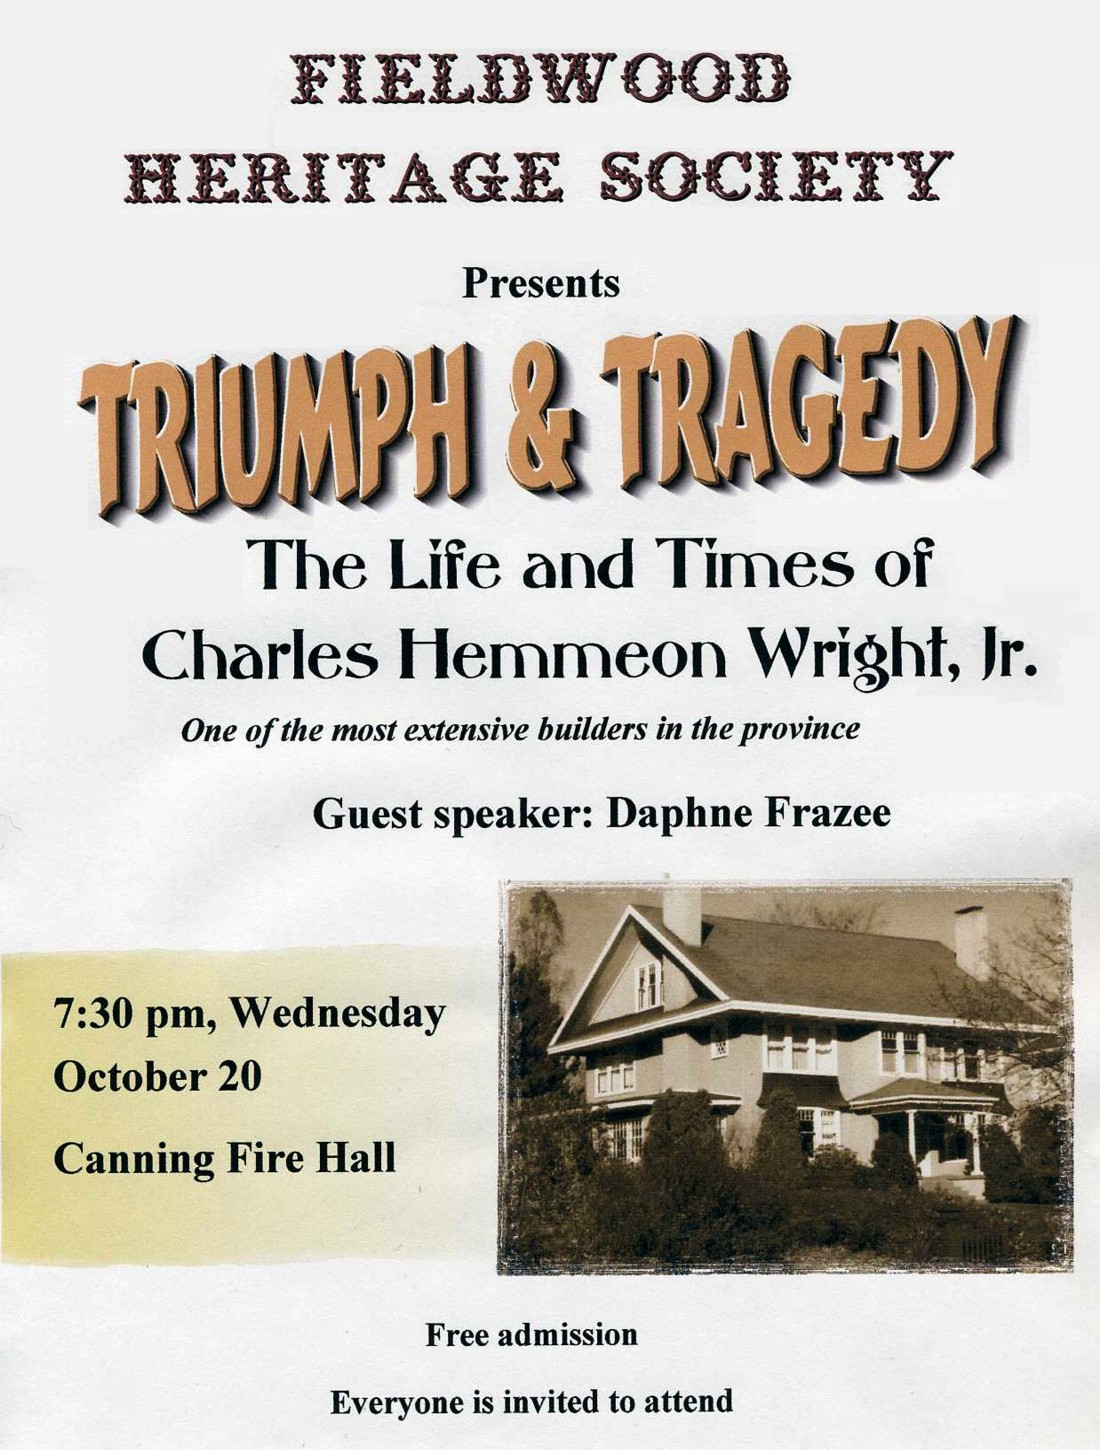 Fieldwood Heritage Society: Charles Hemmeon Wright Jr. Life and Times, 20 October 2010